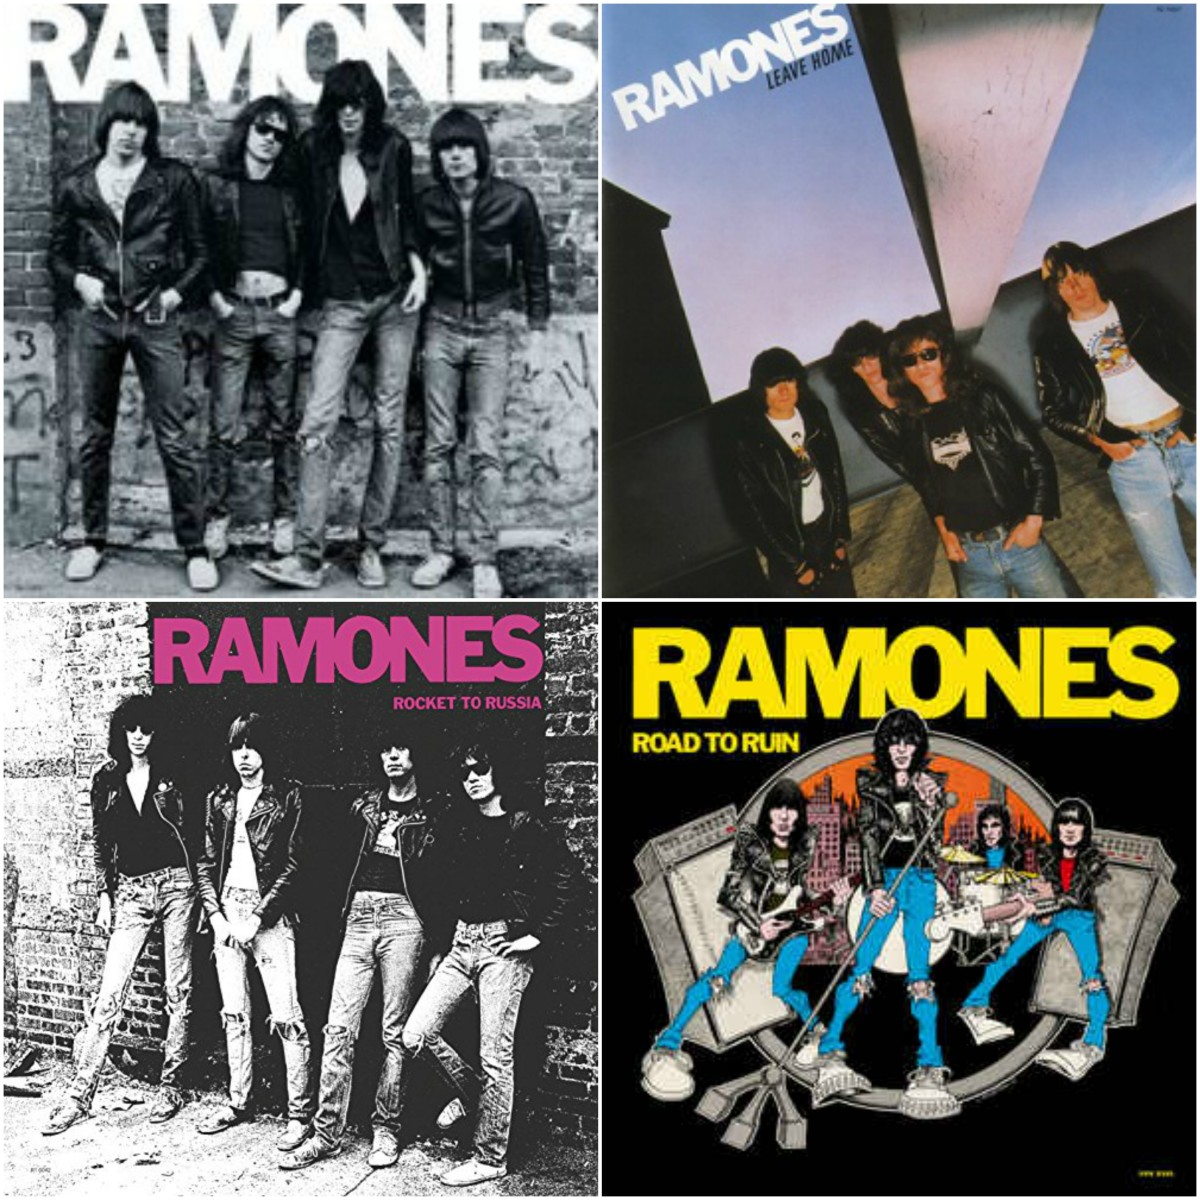 Fun Fact: the Ramones' debut album, released in 1976, was finally certfied Gold (500,000 copies sold) in 2014. Better late than never!